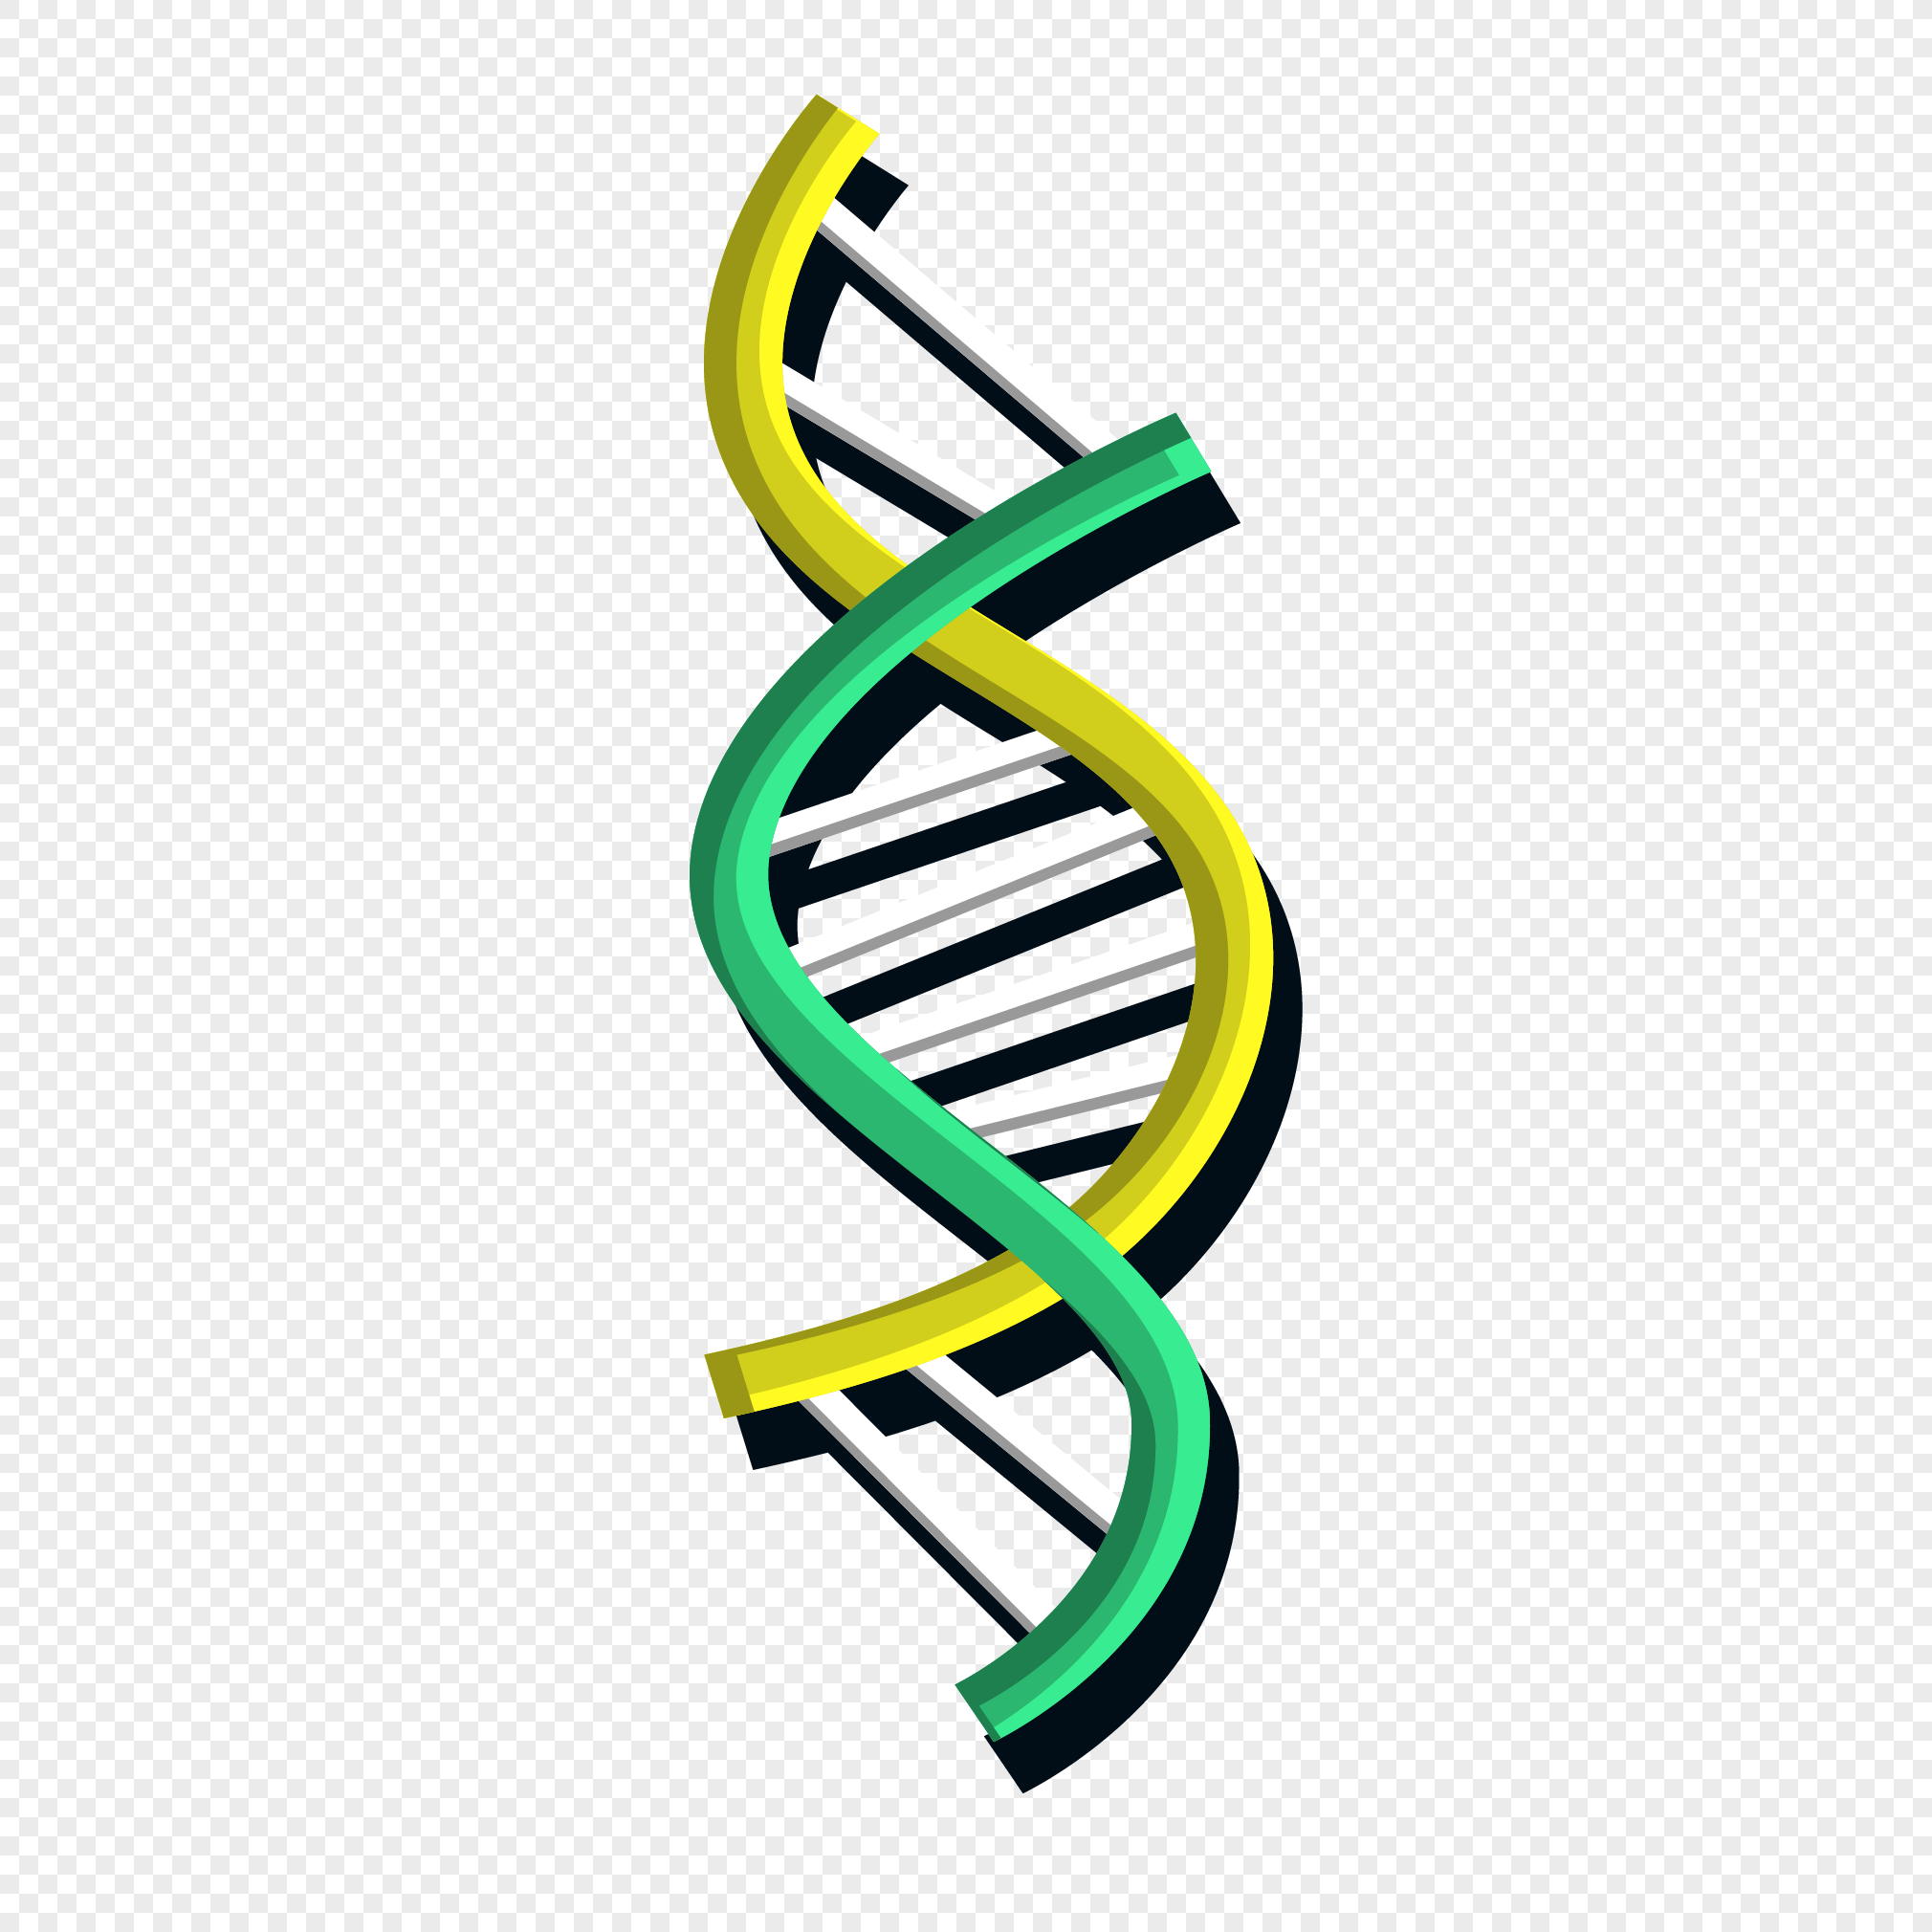 2020x2020 Dna Color Chain Vector Material Png Image Picture Free Download